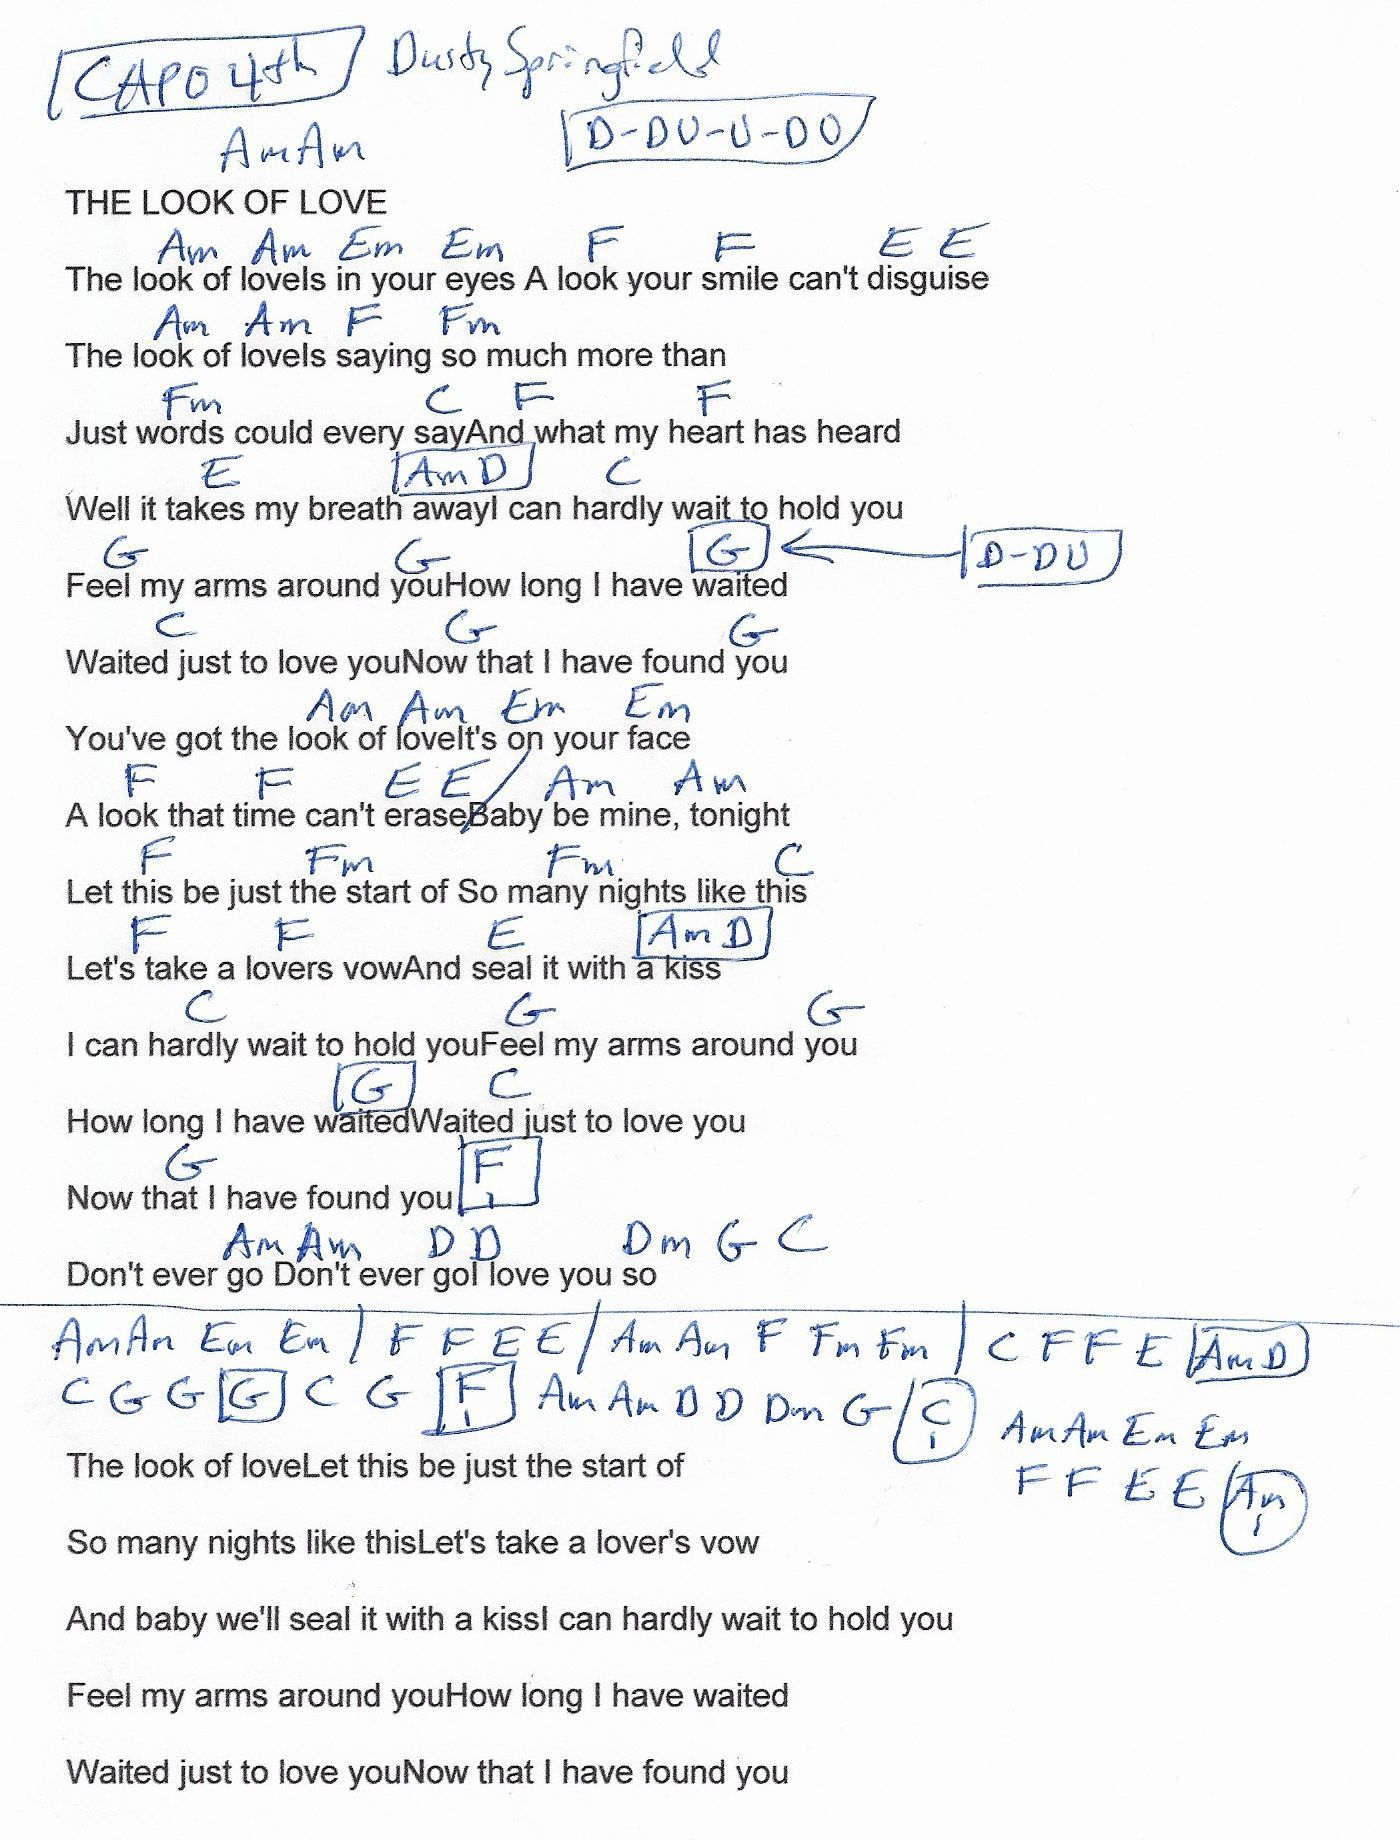 The Look Of Love Dusty Springfield Guitar Chord Chart Capo 4th